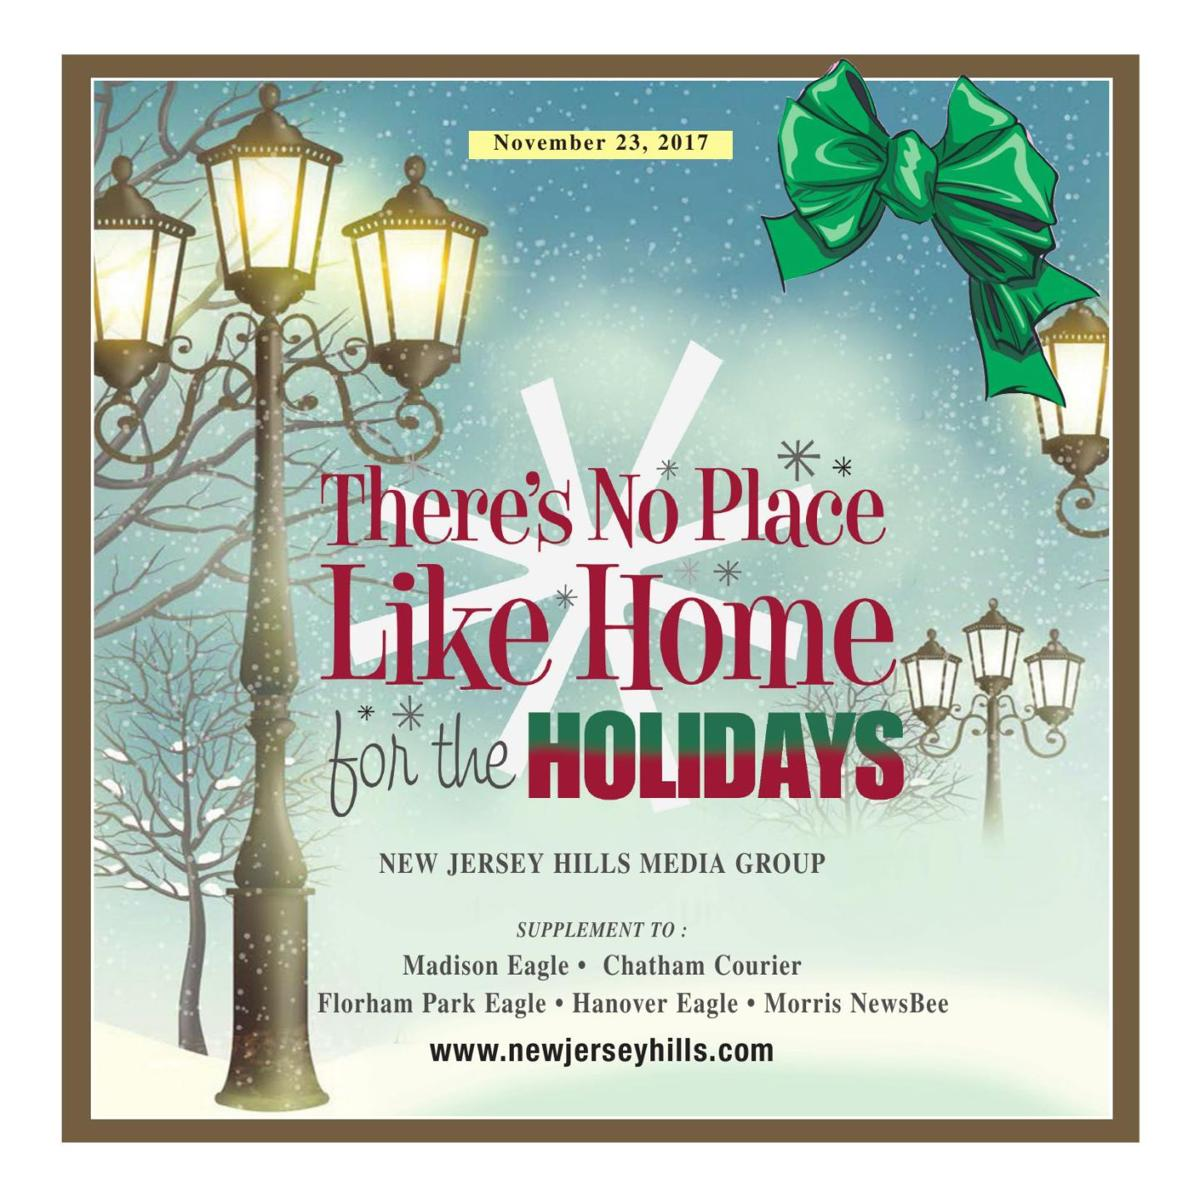 Madison Home for the Holidays - November 23, 2017